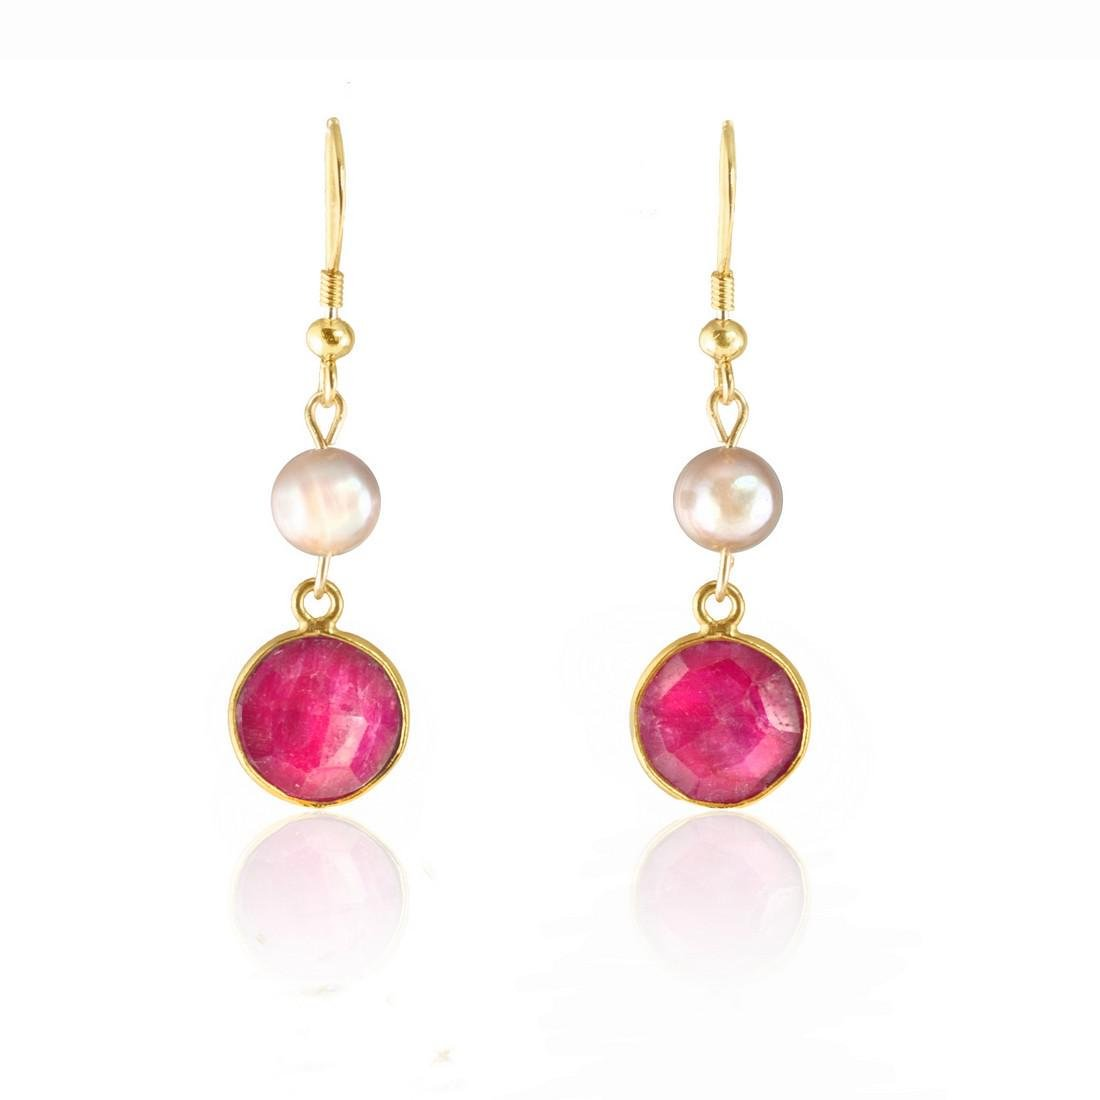 Ruby 5 carat Earrings with Pearls